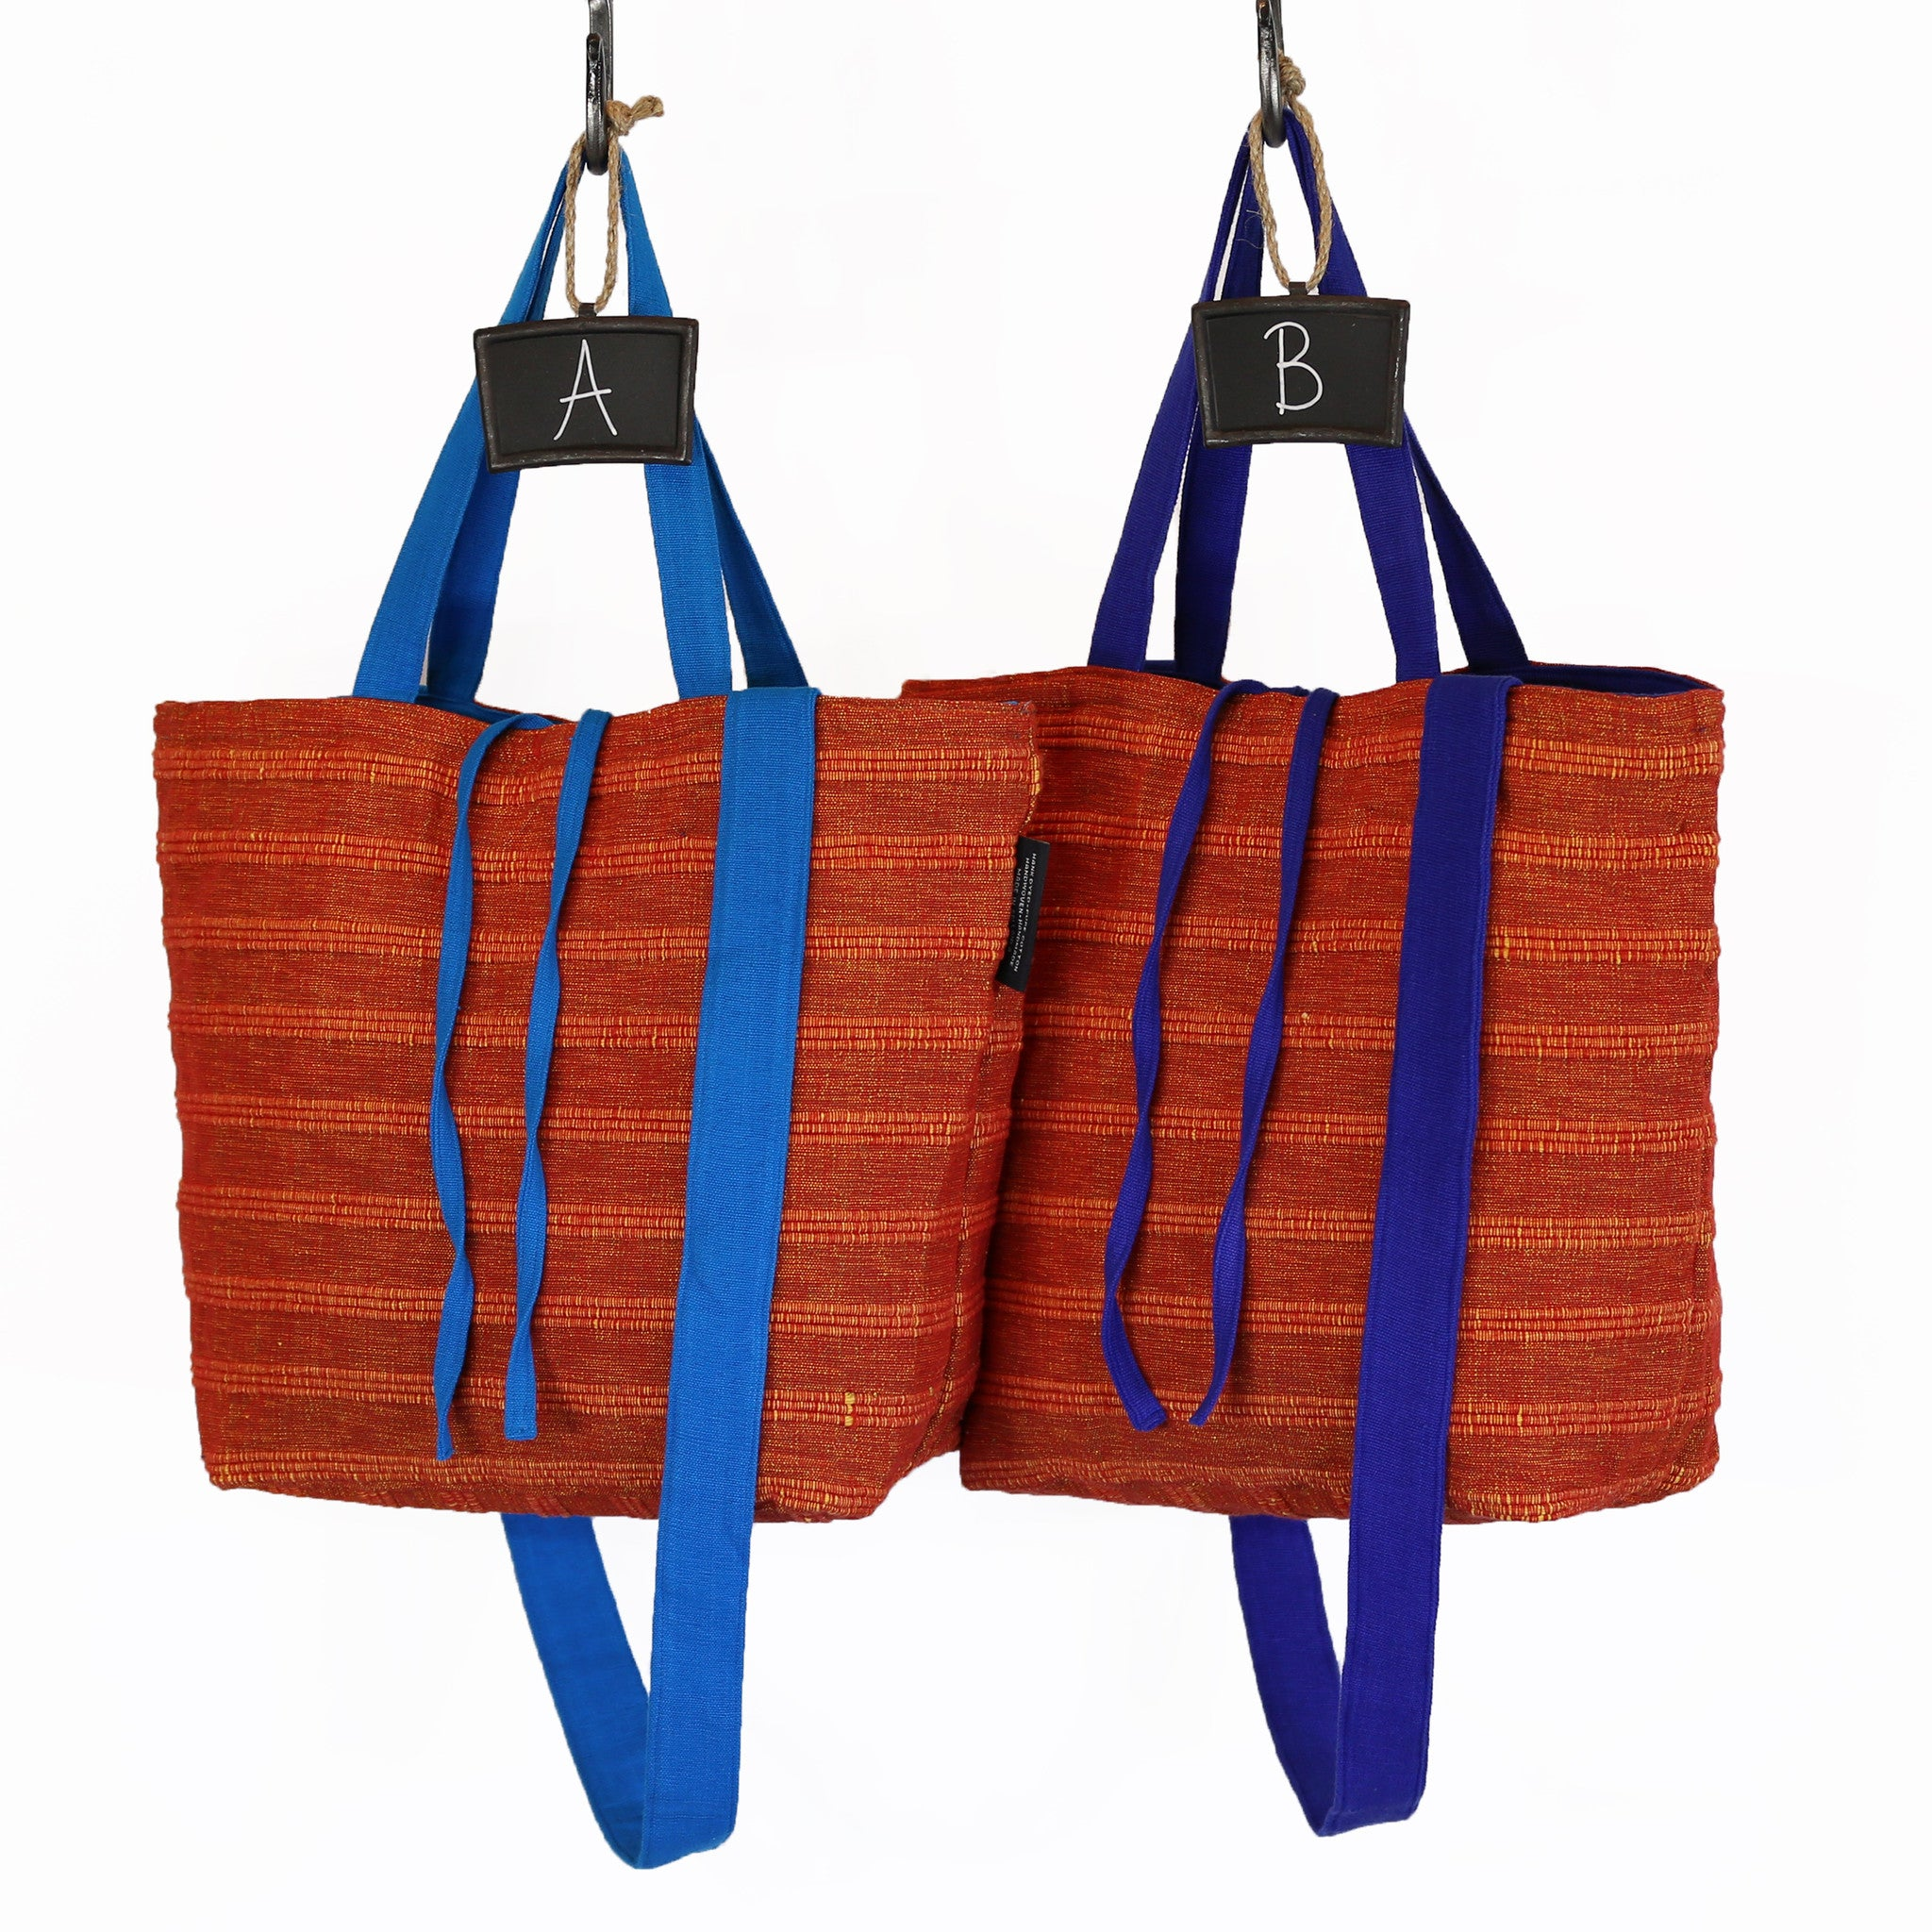 The Everyday Crossbody/Tote – All Coral Reef fabric patterns shown